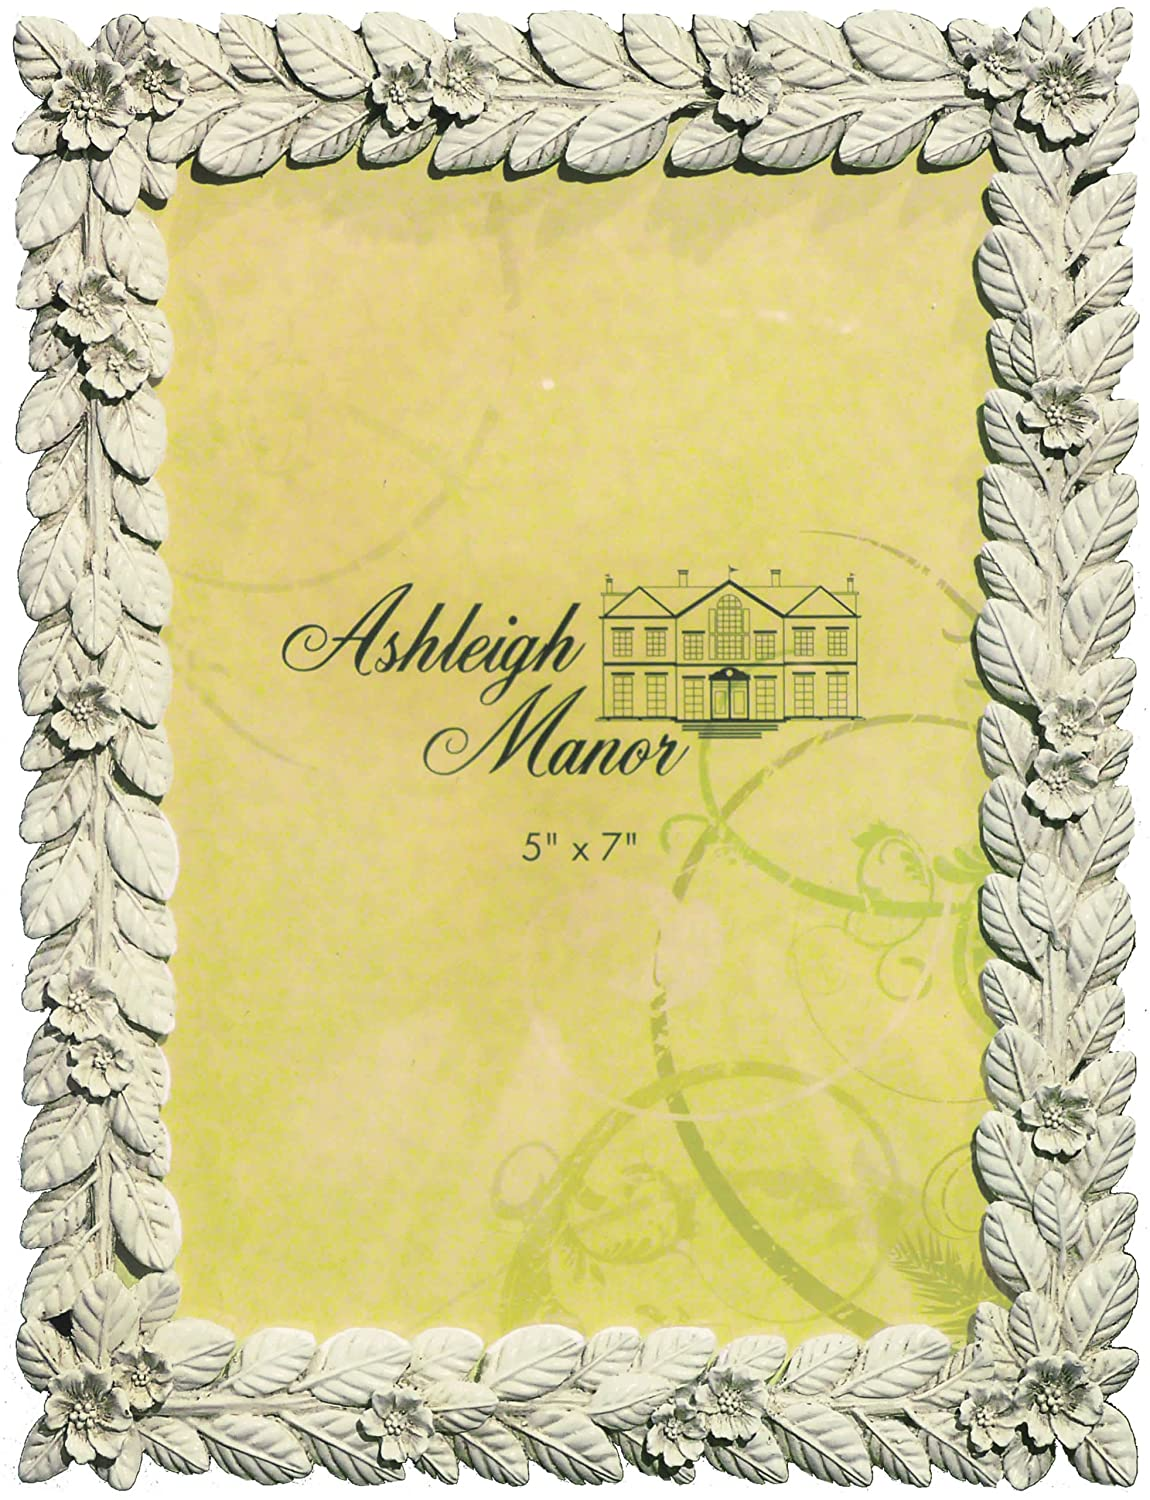 Buy Ashleigh Manor Garland Frame, White Online at Low Prices in ...